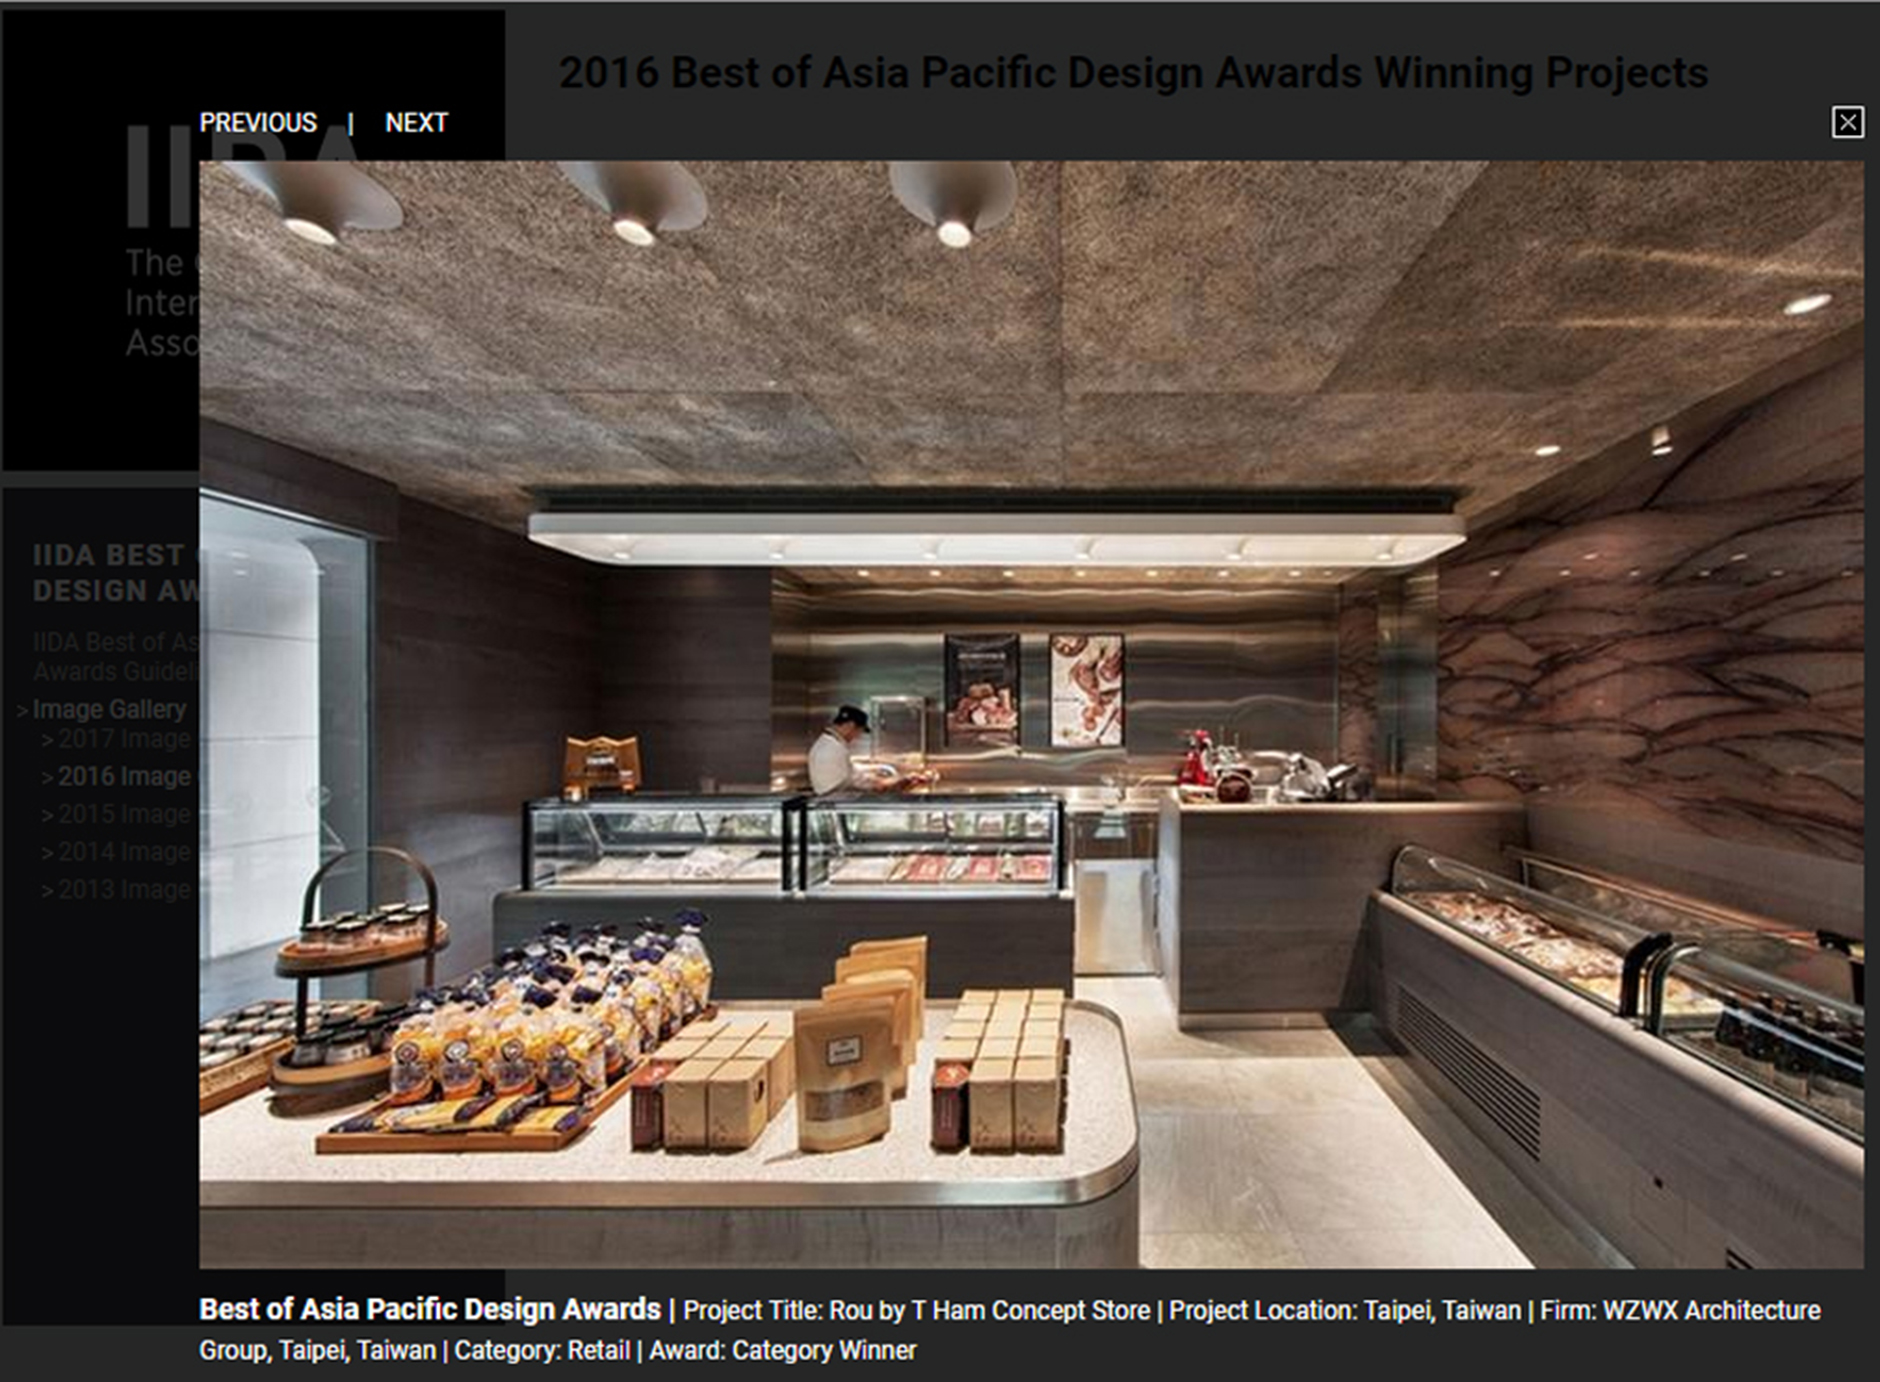 Wzwx architecture group 澤新建築 international interior design association iida com